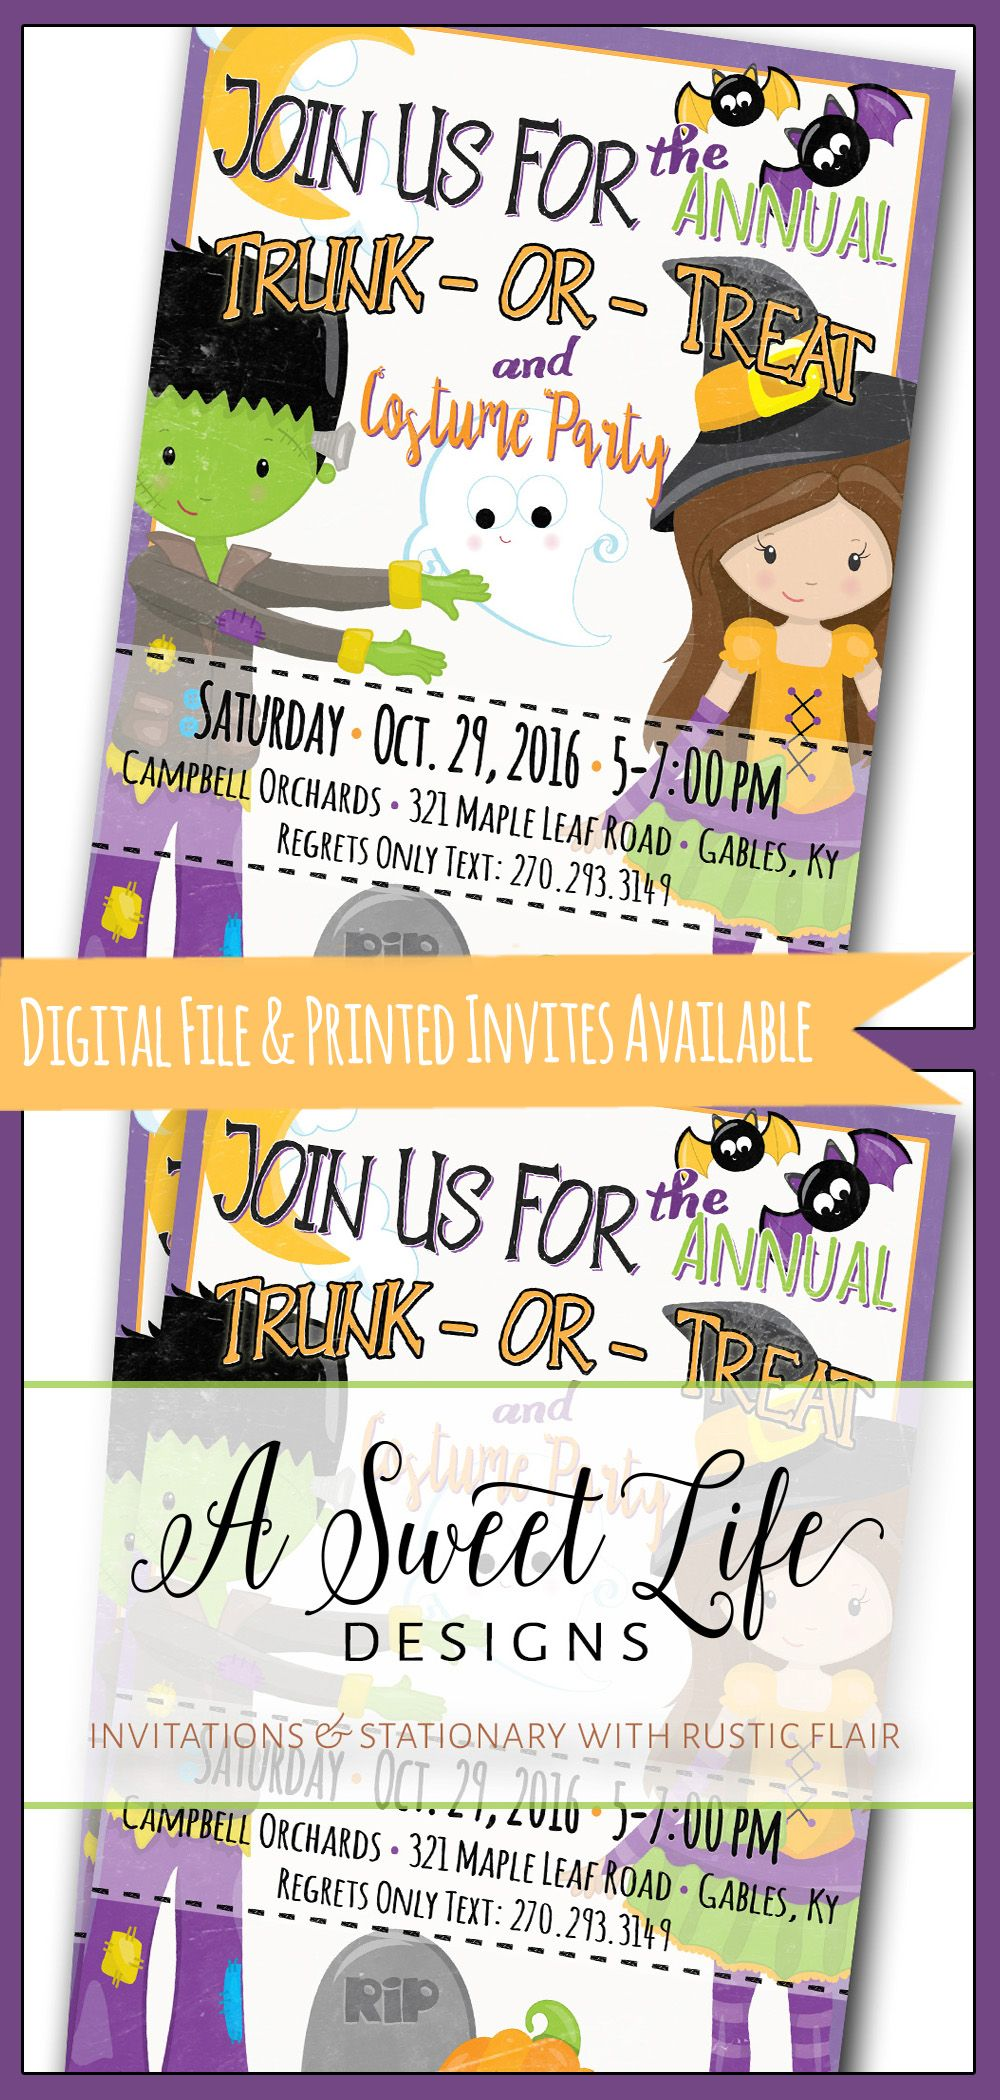 Halloween Party Invitation - Trunk or Treat Flyer - Costume Party ...